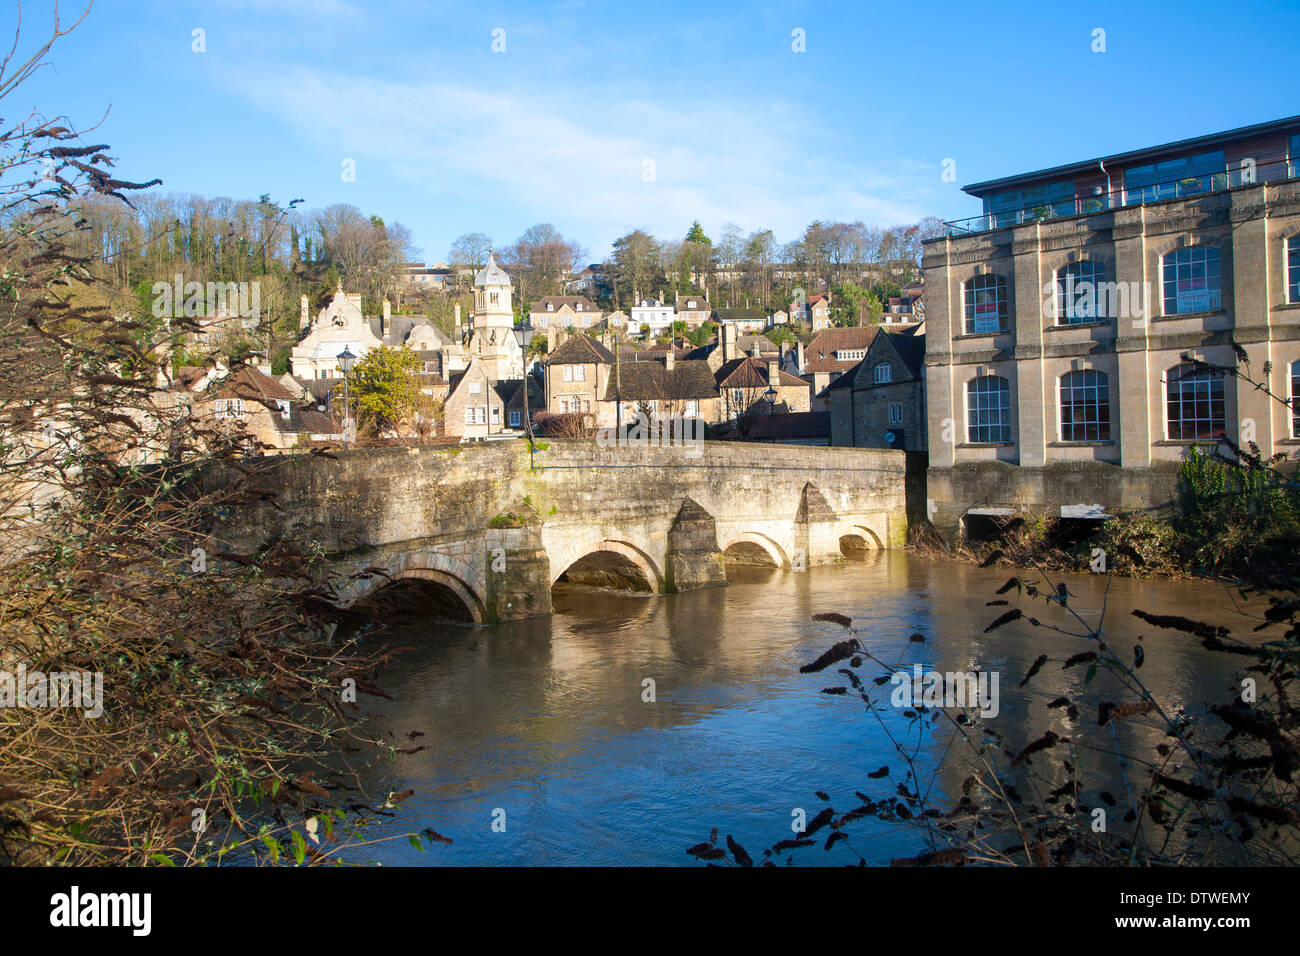 Bridge over River Avon with high level of water, Bradford on Avon, Wiltshire, England - Stock Image